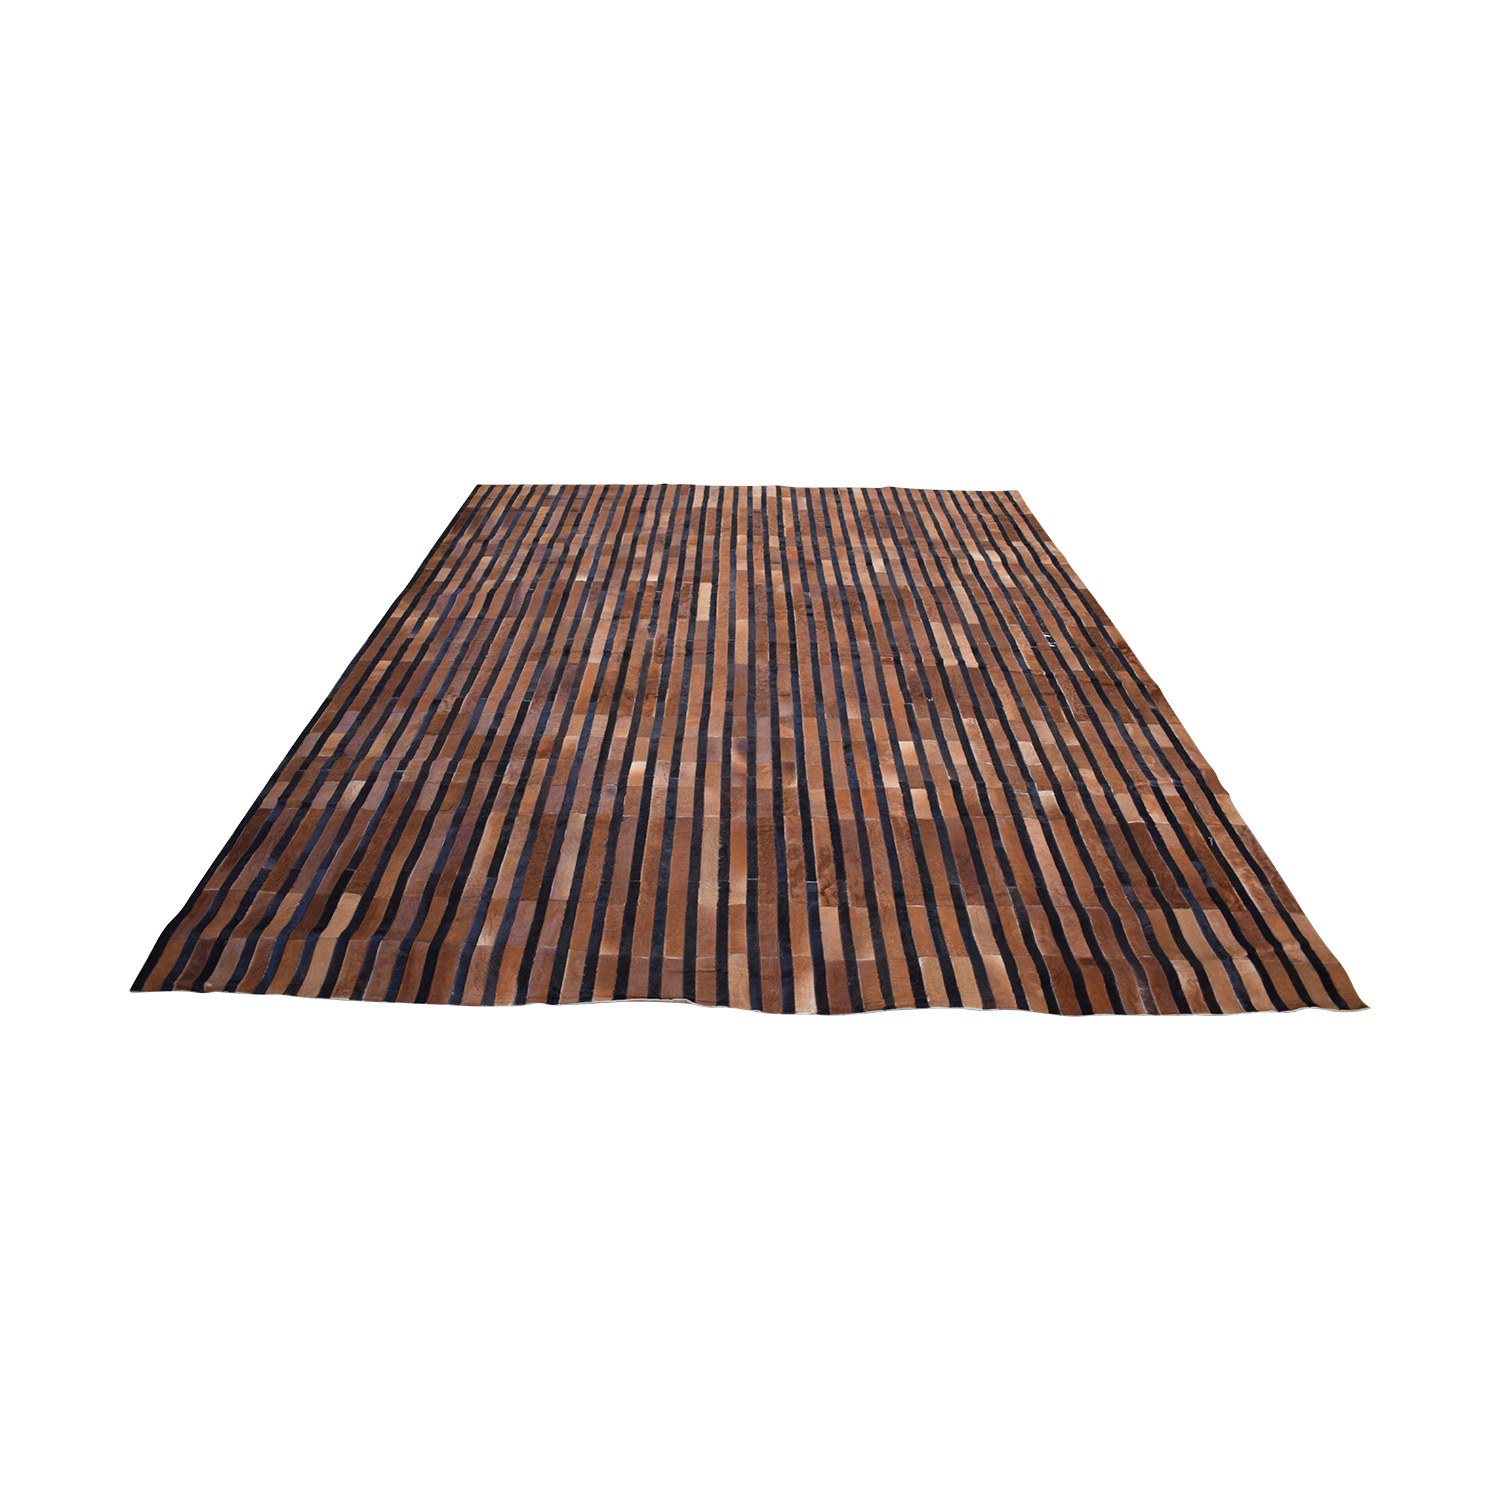 ABC Carpet & Home ABC Carpet & Home Striped Rug coupon